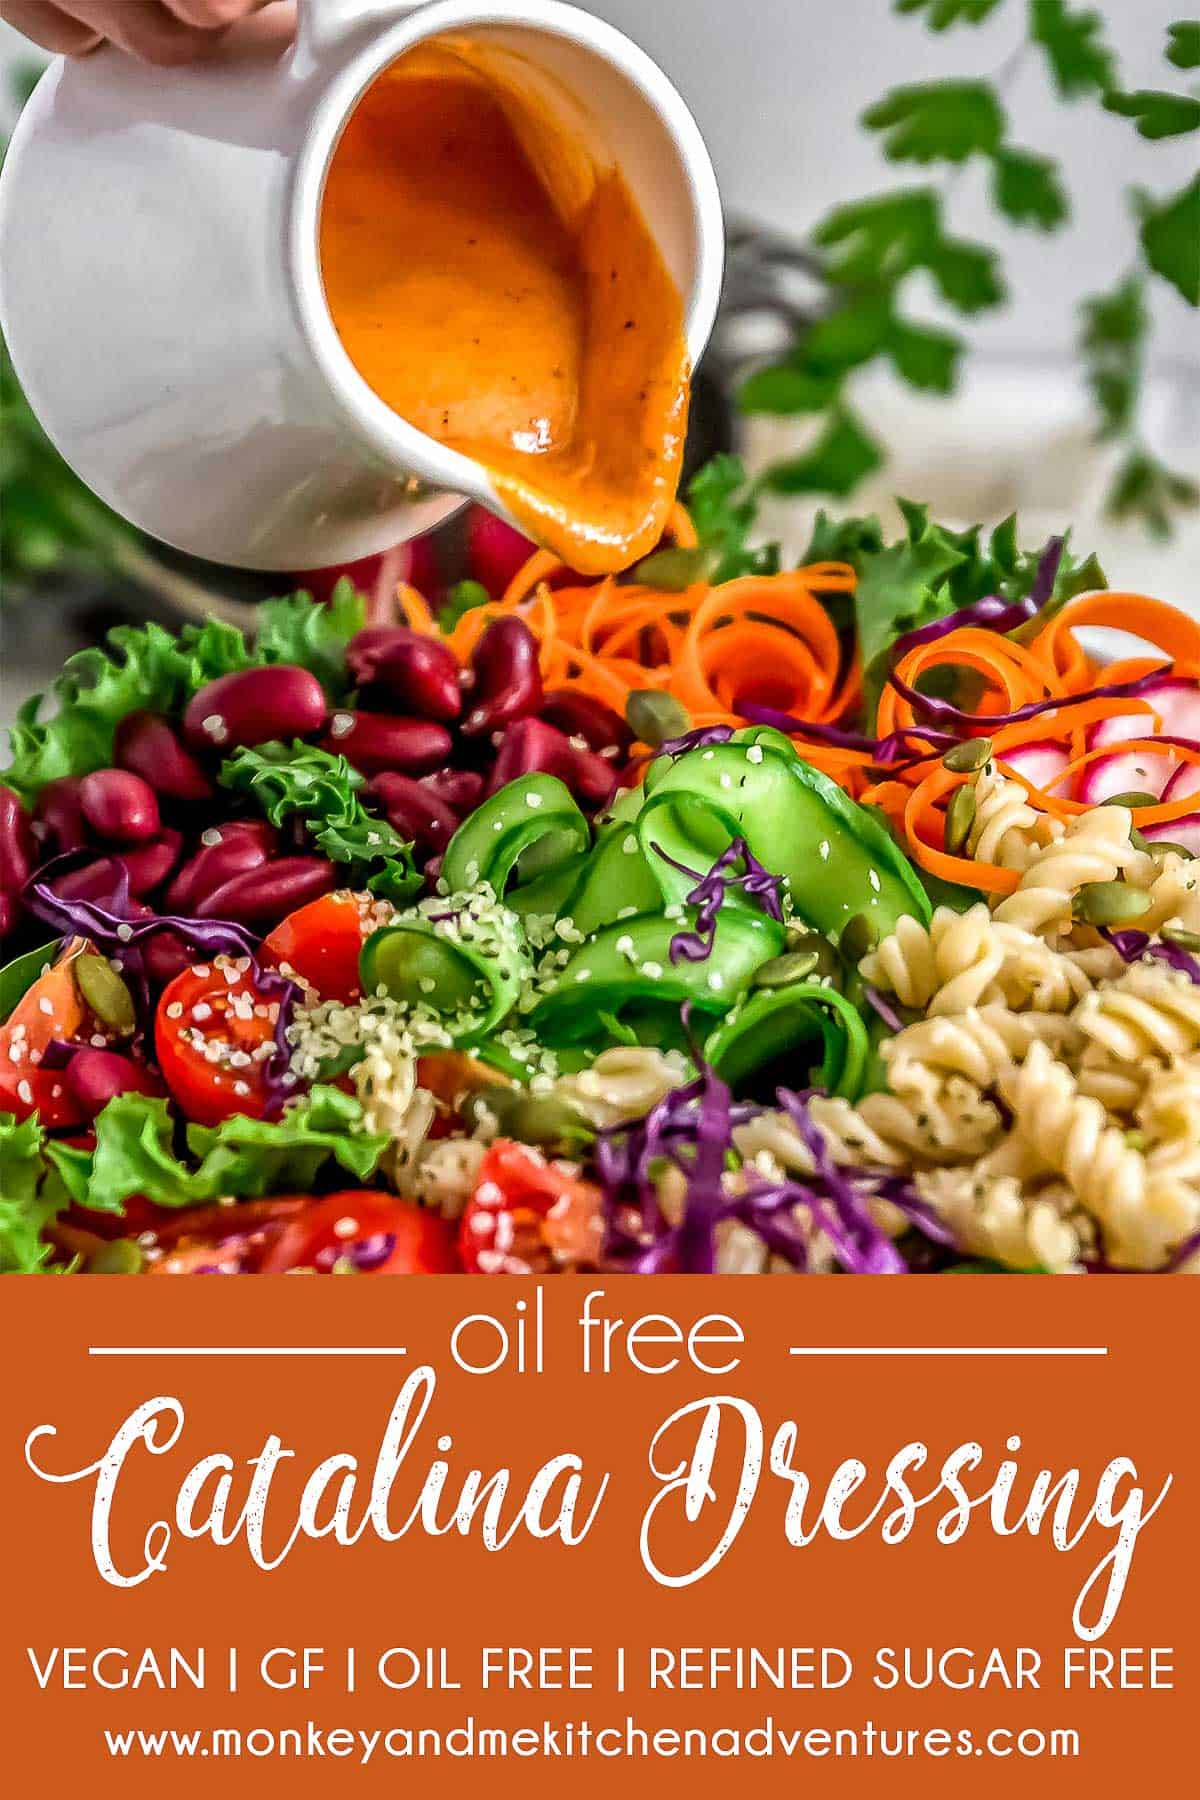 Close up of Oil Free Catalina Dressing and text describing it.